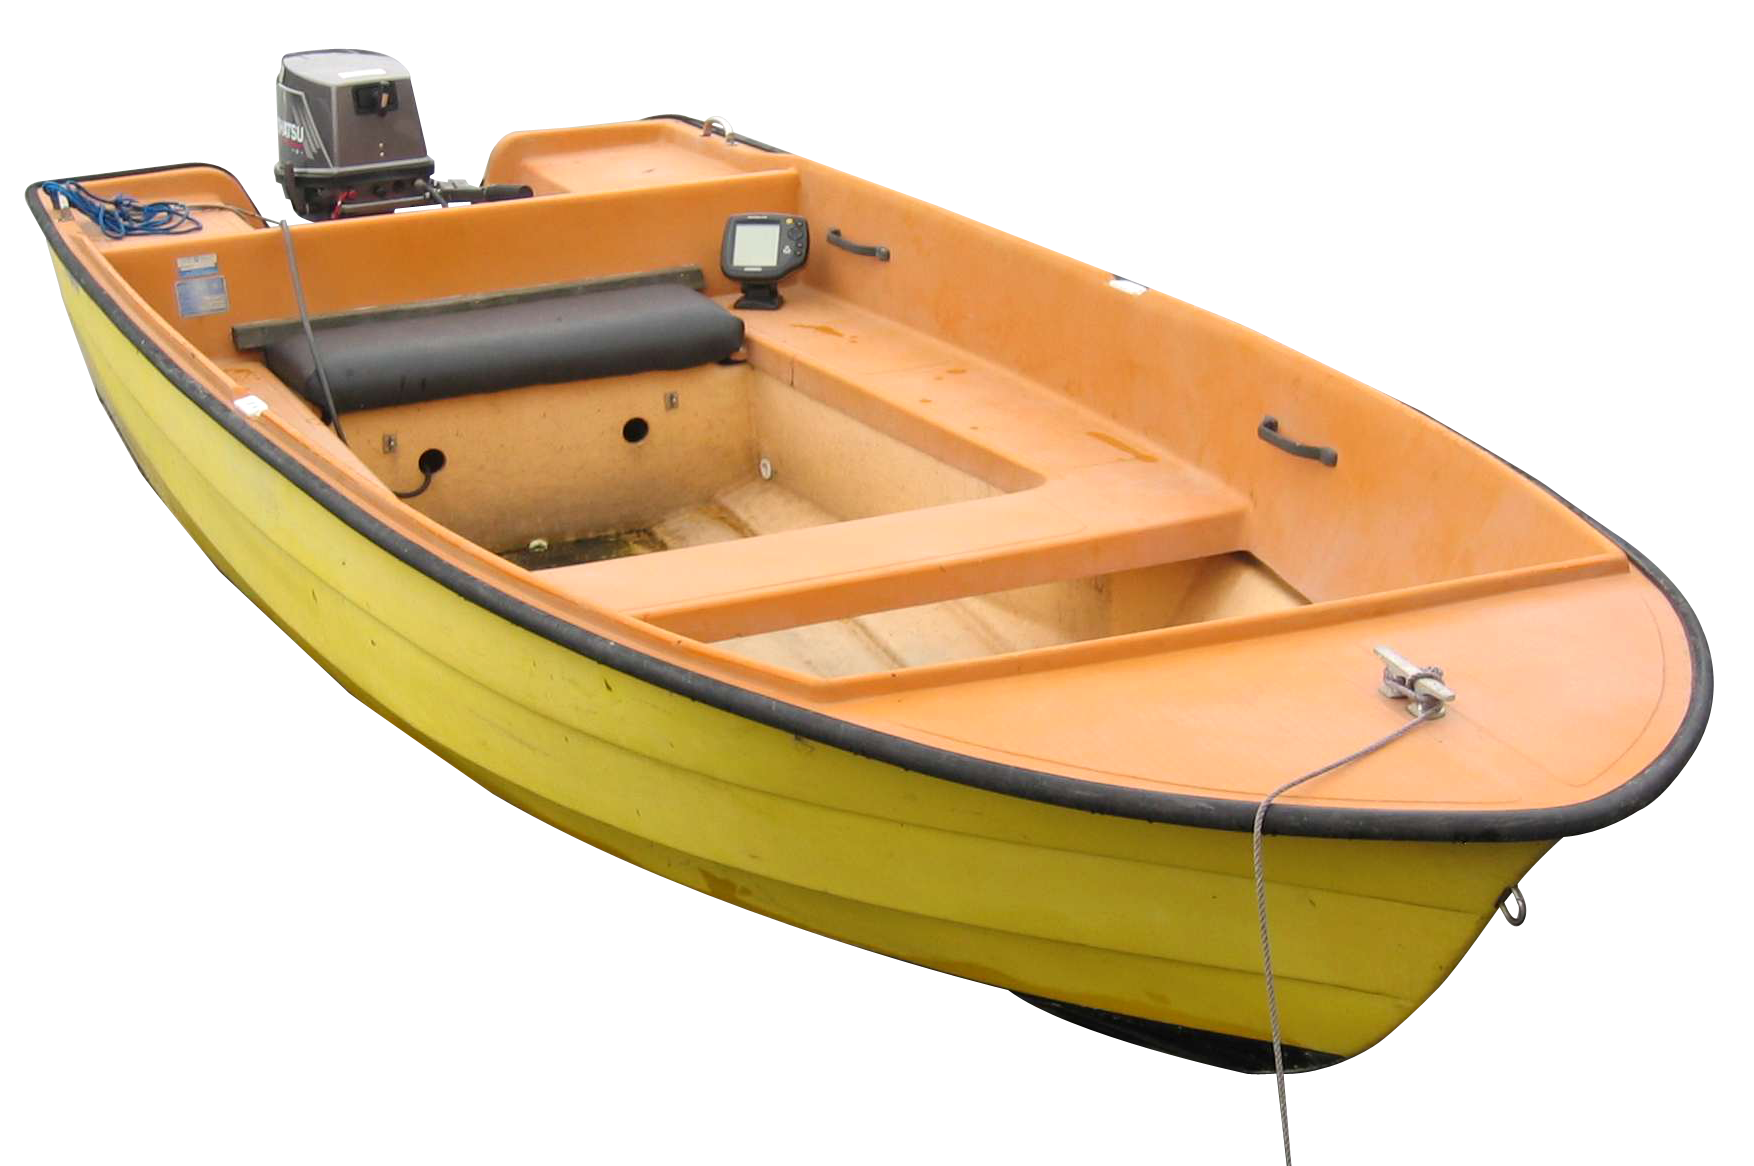 vector transparent stock Boat clipart dinghy. Png images free download